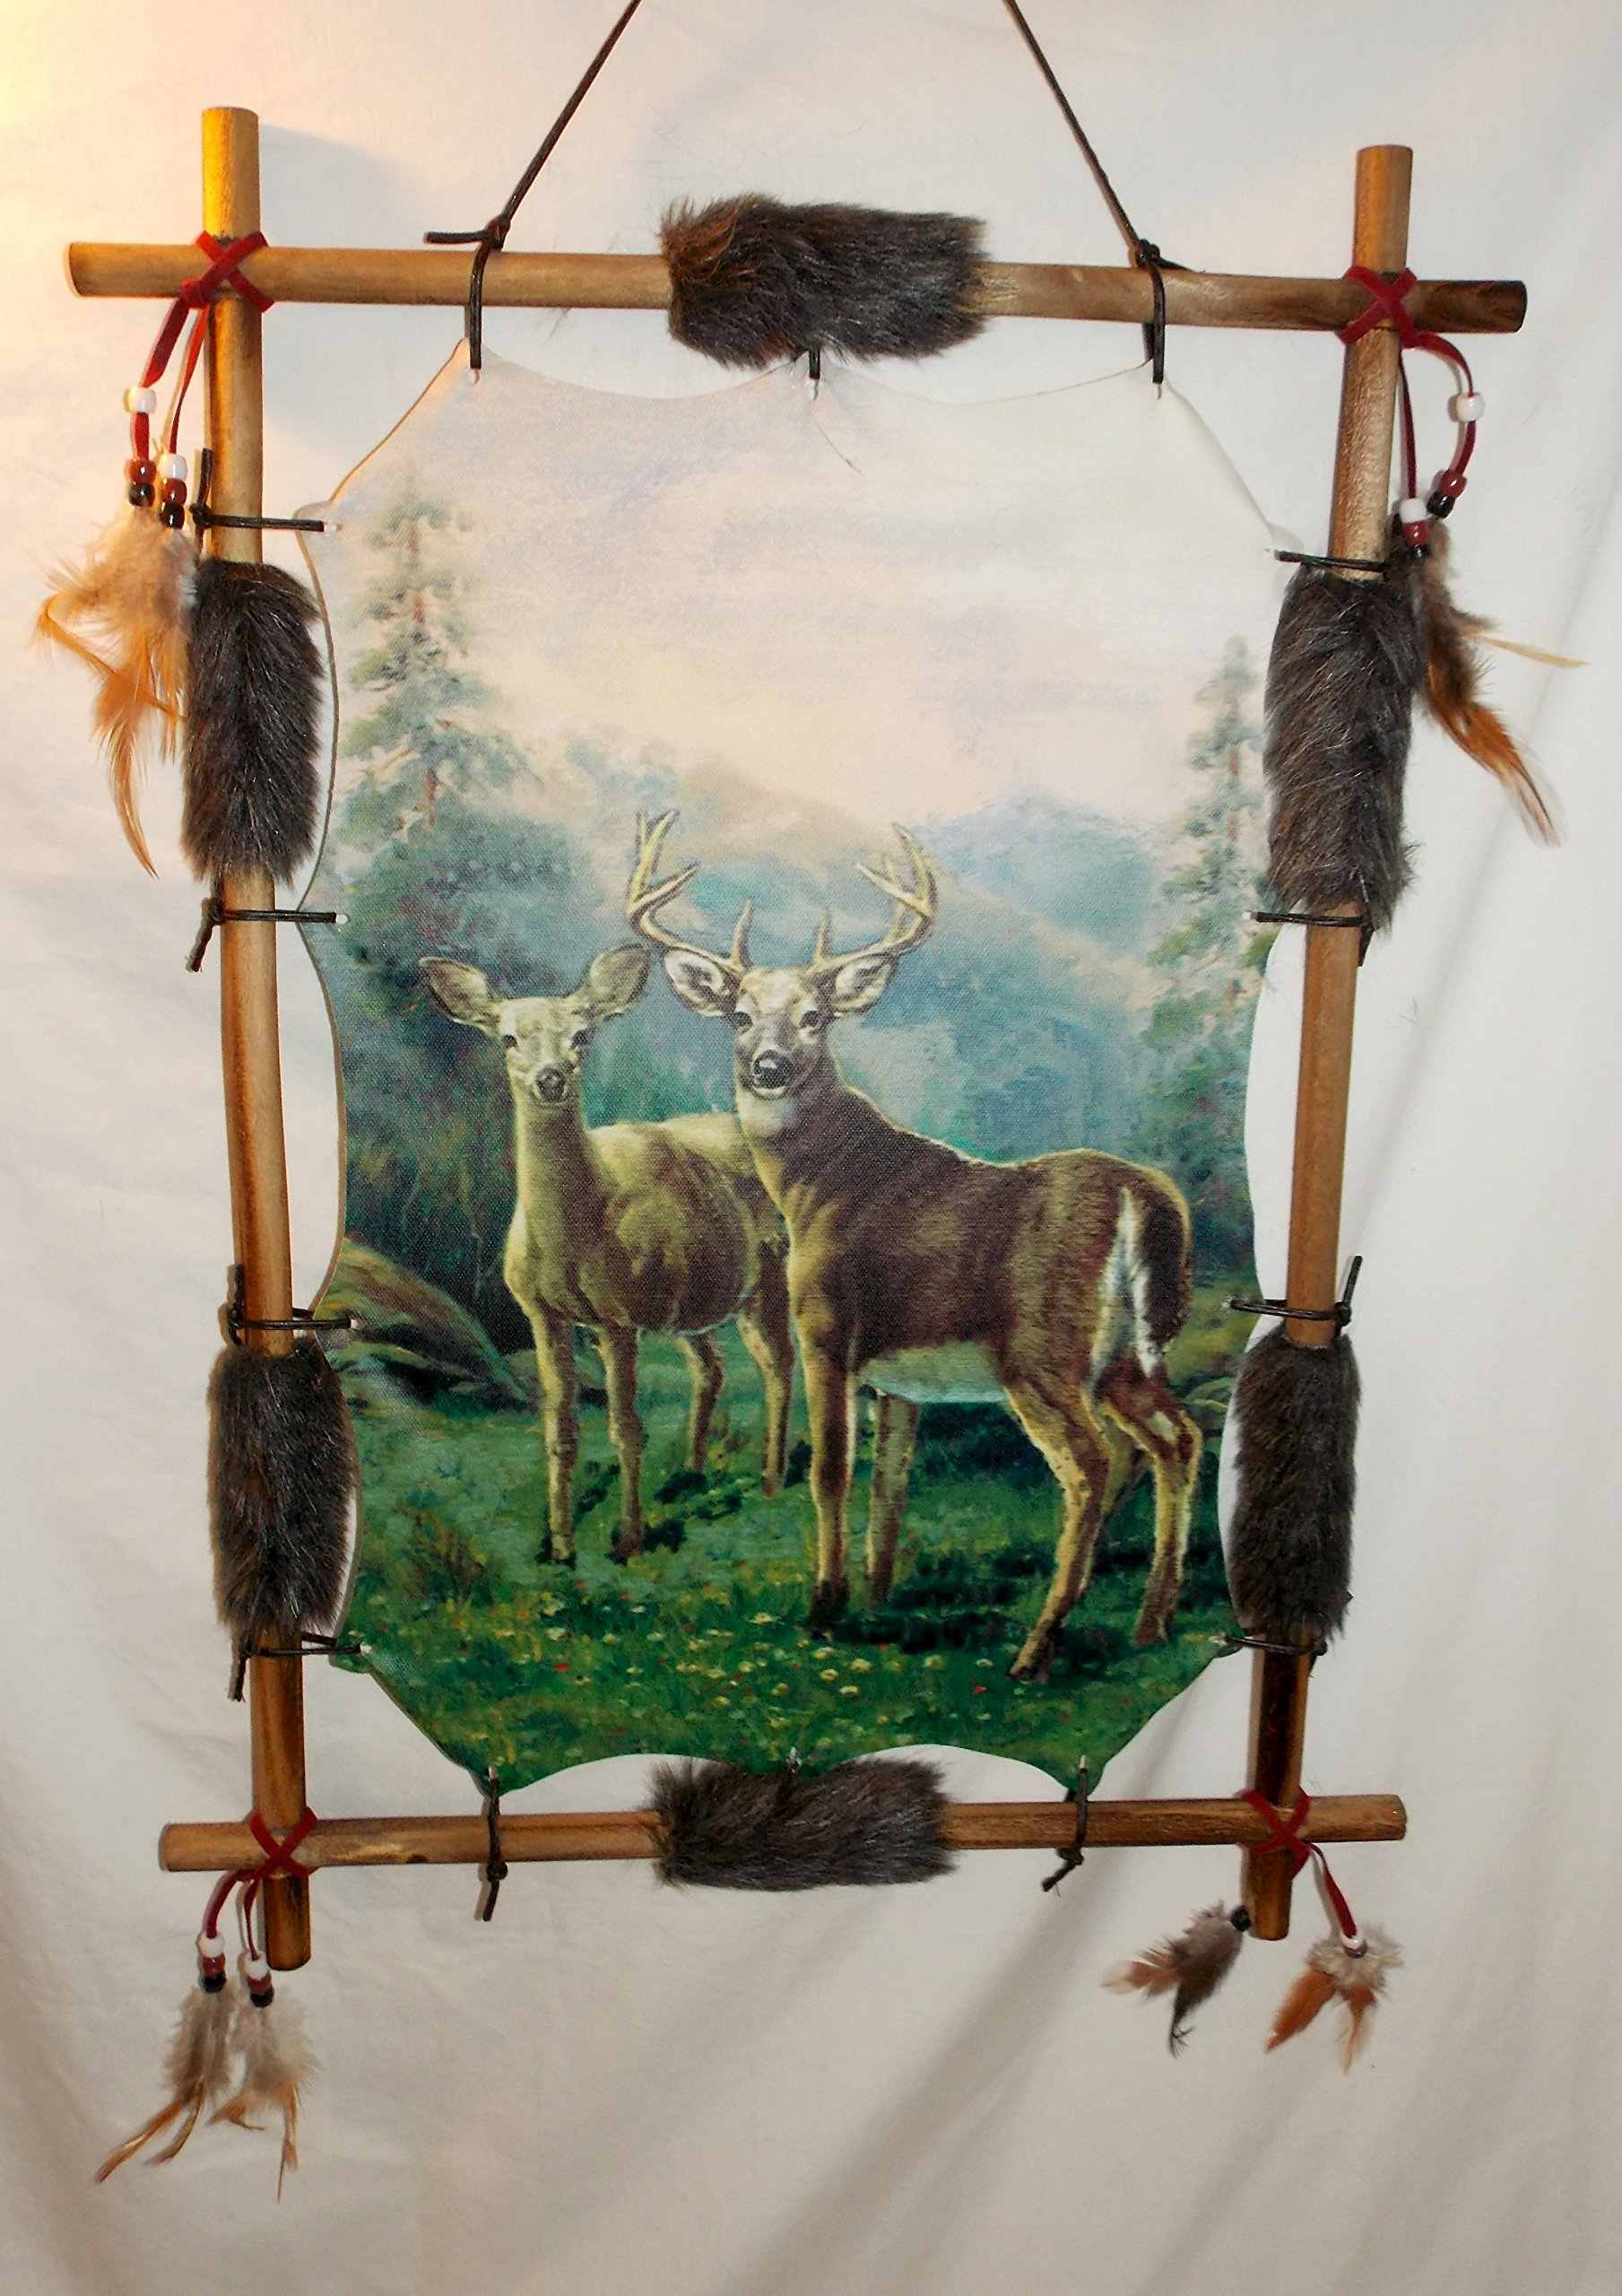 New Doe & Buck Deer in a Picturesque Mountain Background Wood Frame Dream Catcher 22'' x 16''